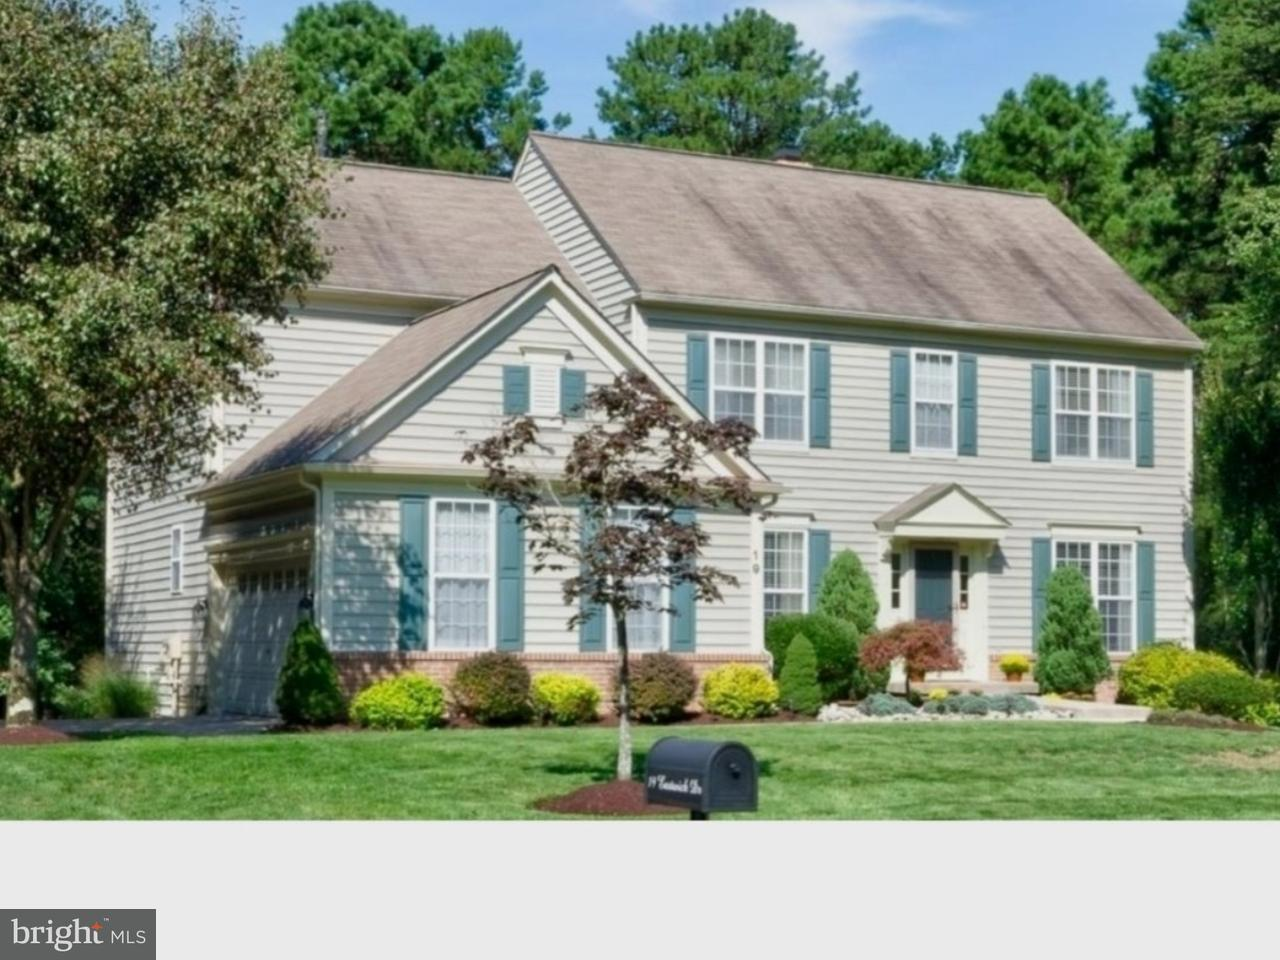 Single Family Home for Sale at 19 EASTWICK Drive Gibbsboro, New Jersey 08026 United States